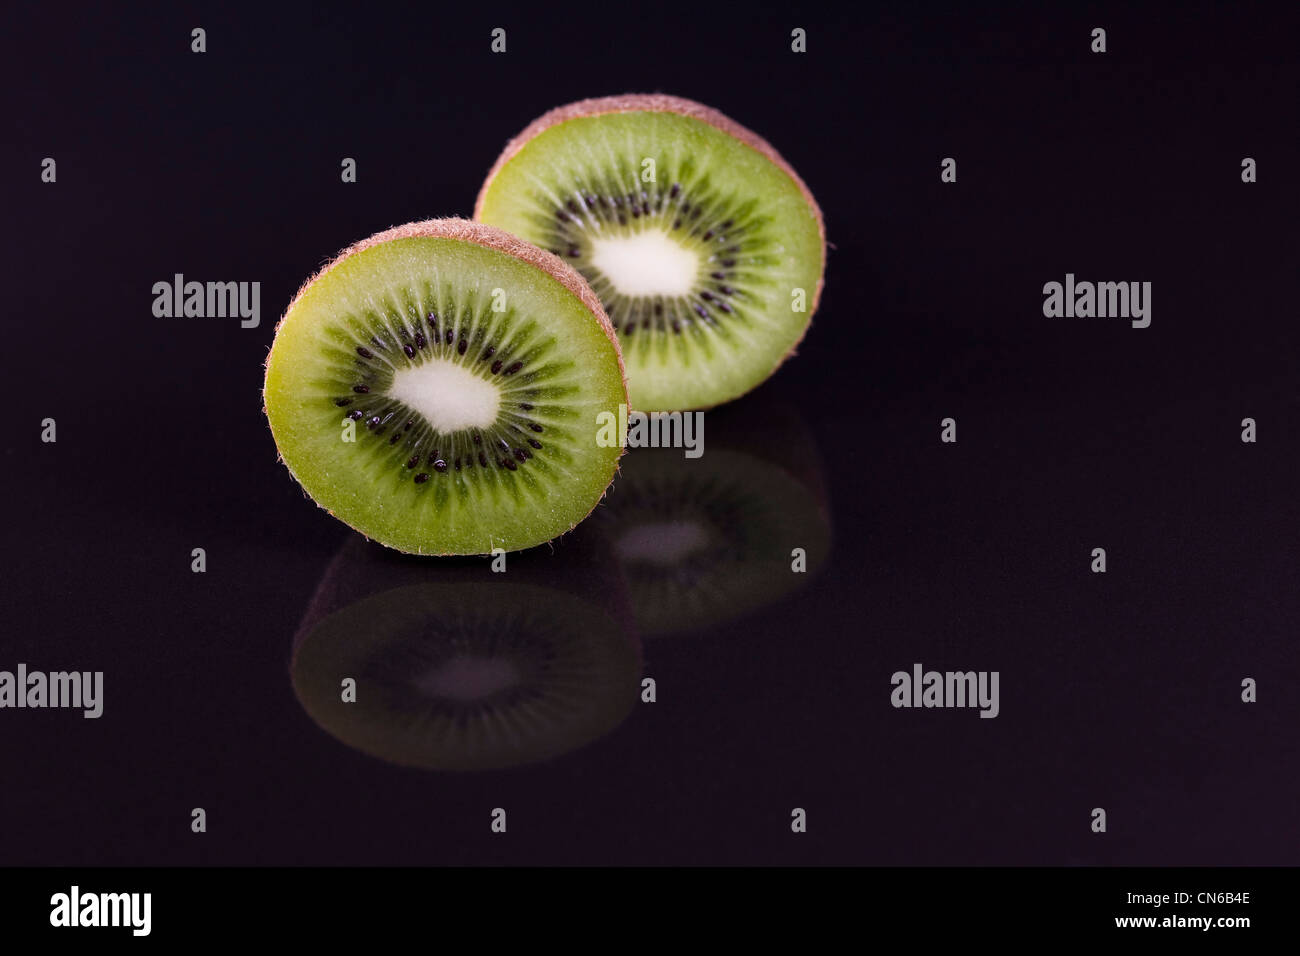 Actinidia deliciosa. Kiwi fruit cross section reflected on a black surface. Chinese gooseberry. - Stock Image